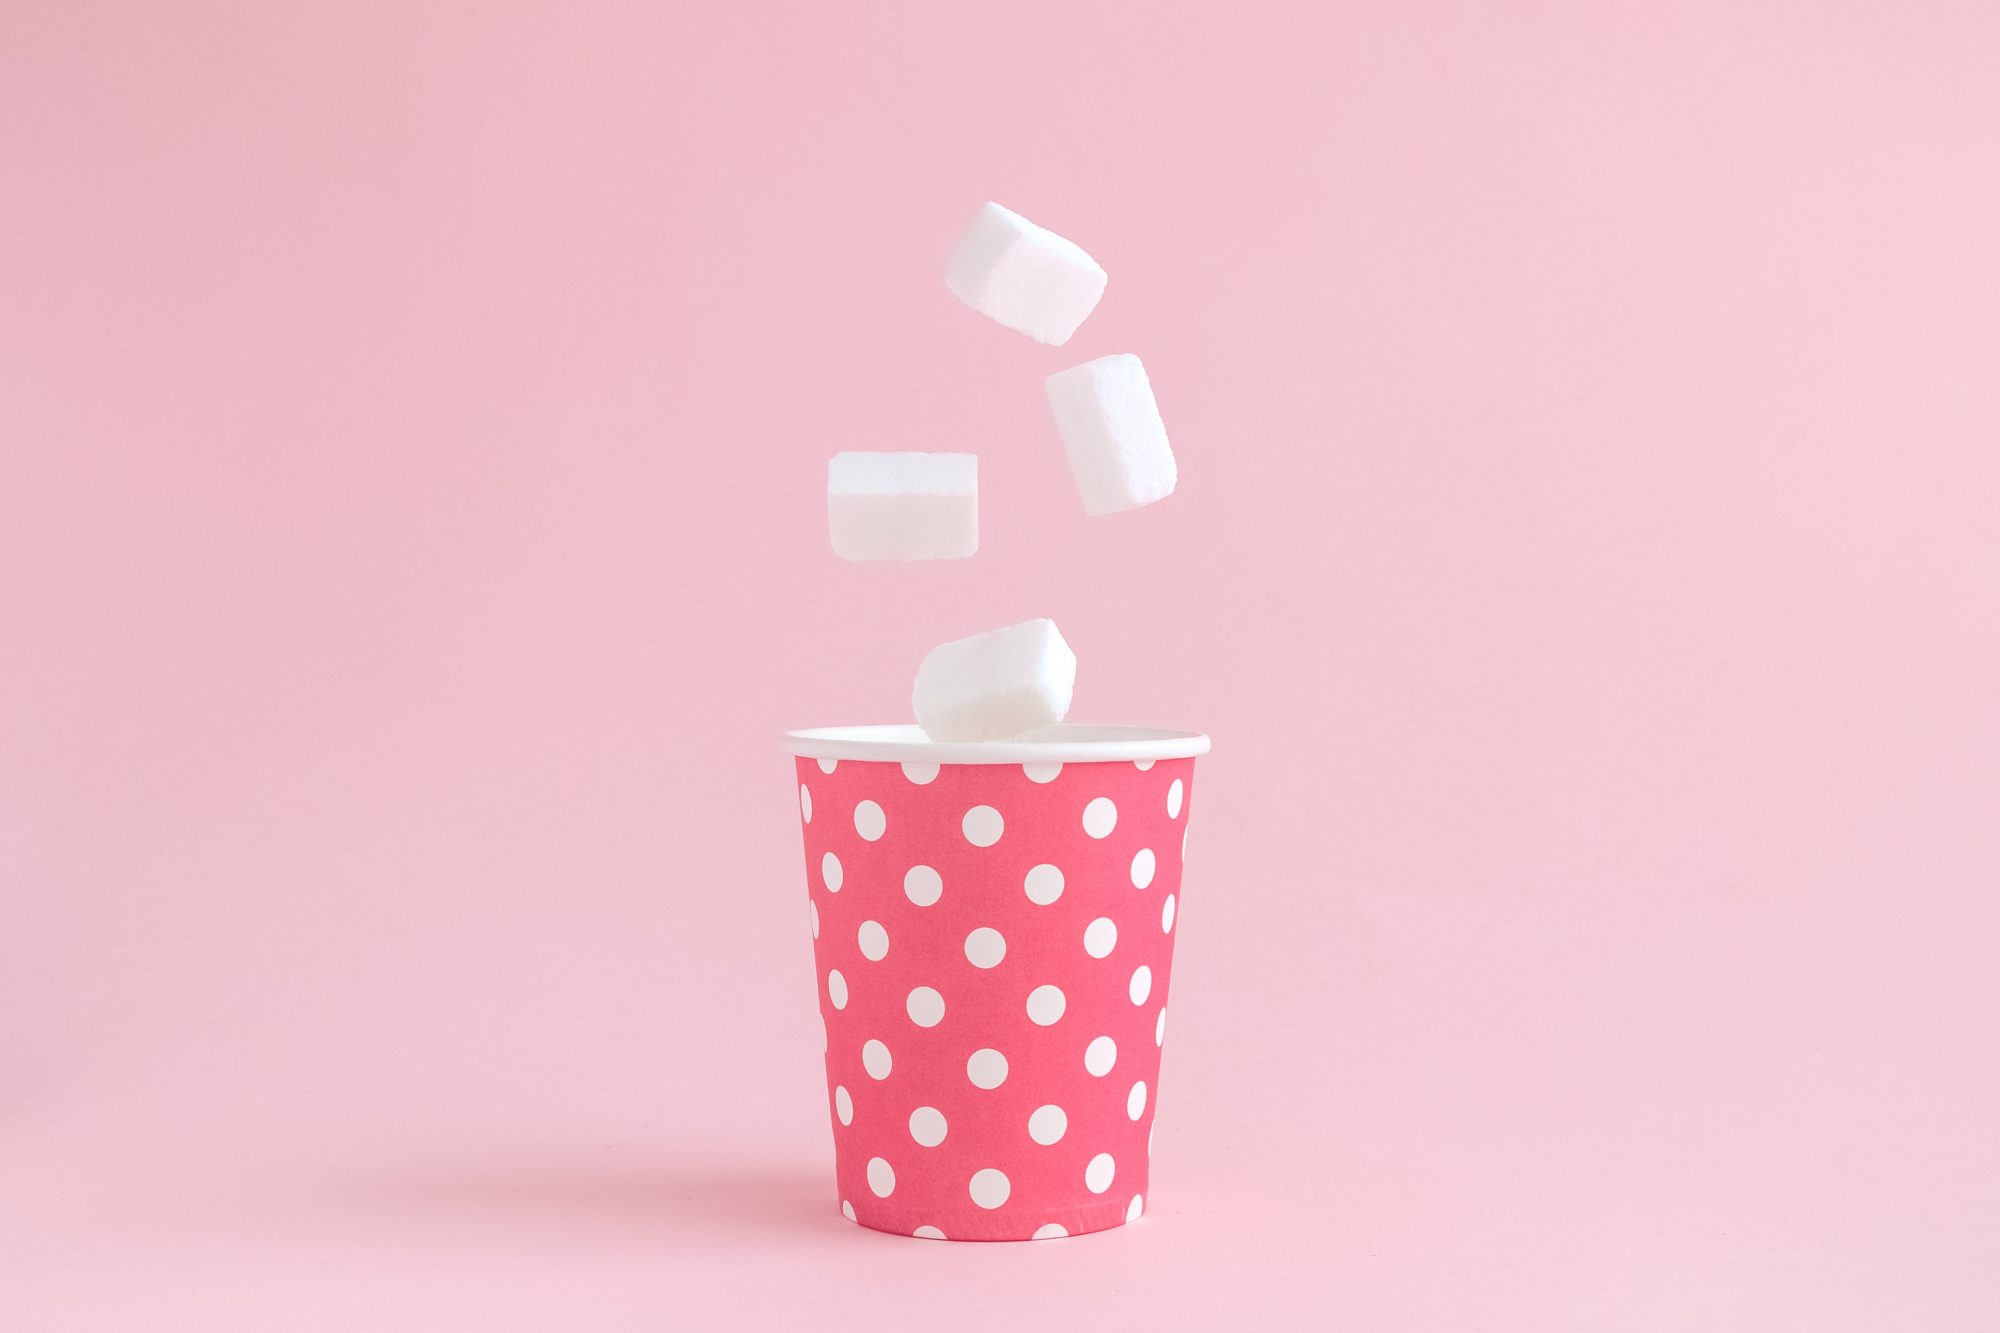 Sugary Drinks Not As Sweet As They Taste